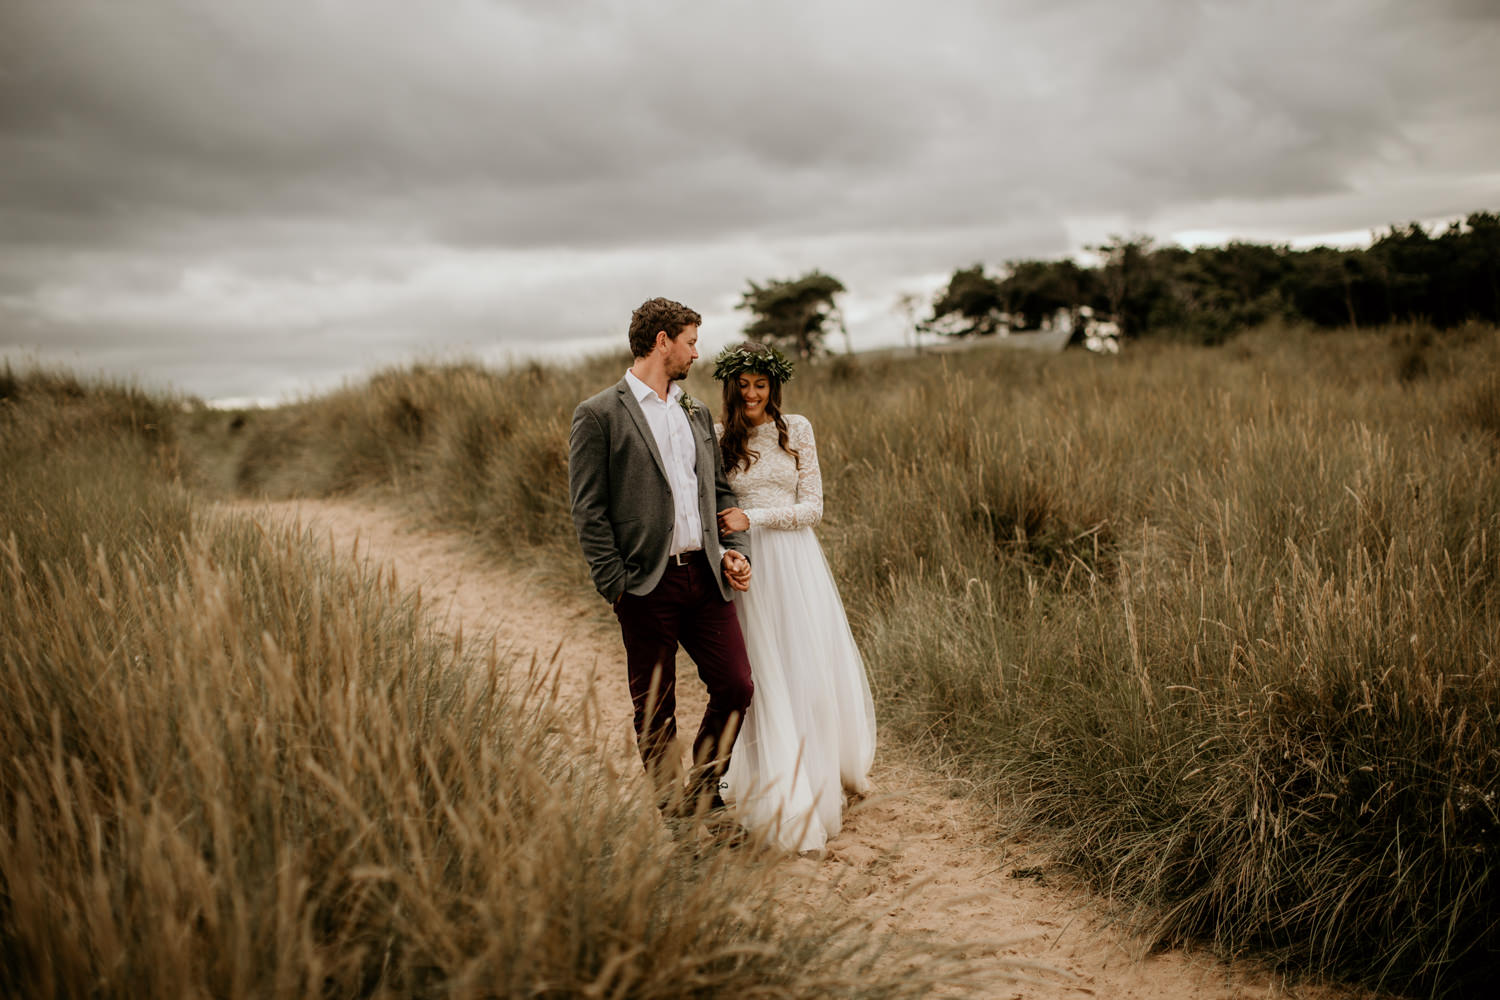 bride wearing an ethical wedding dress walking on the beach with her groom